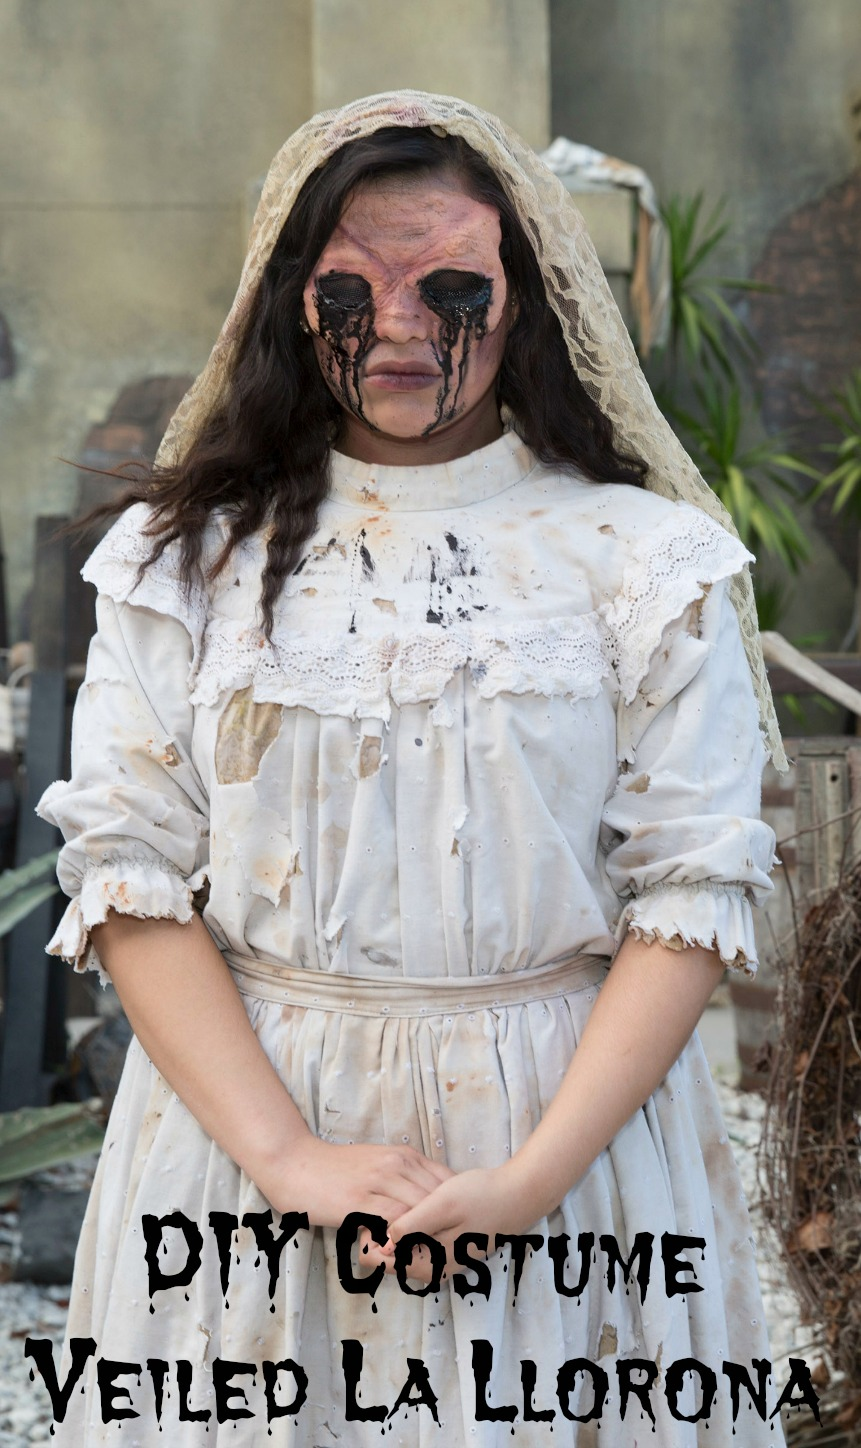 Last Minute Costume Idea Be La Llorona the weeping woman